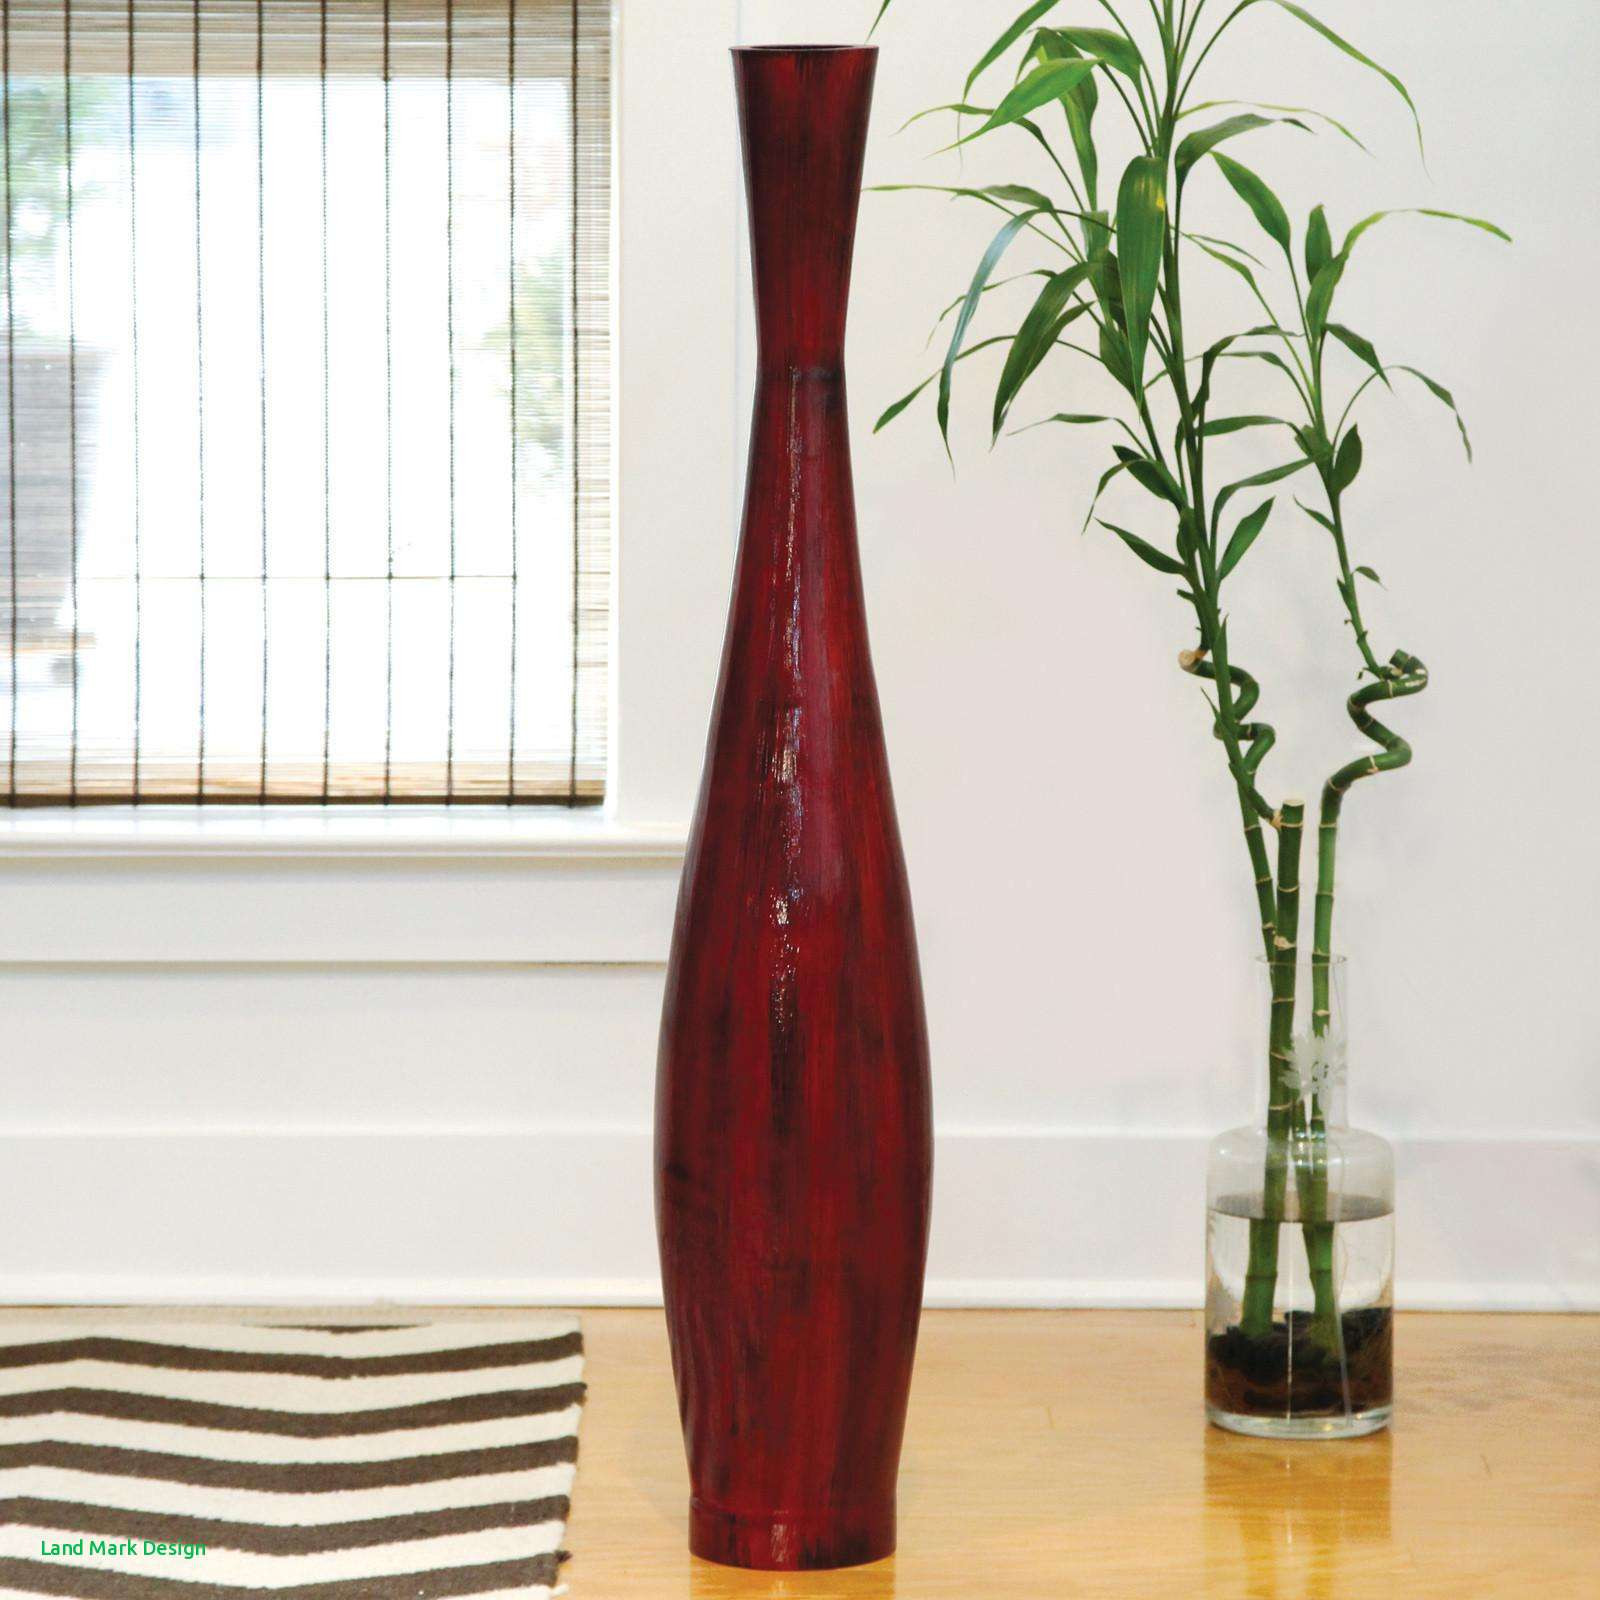 large teal floor vase of large floor vases pics floor vase ikea vases artificial plants regarding large floor vases pics floor vase ikea of large floor vases pics floor vase ikea